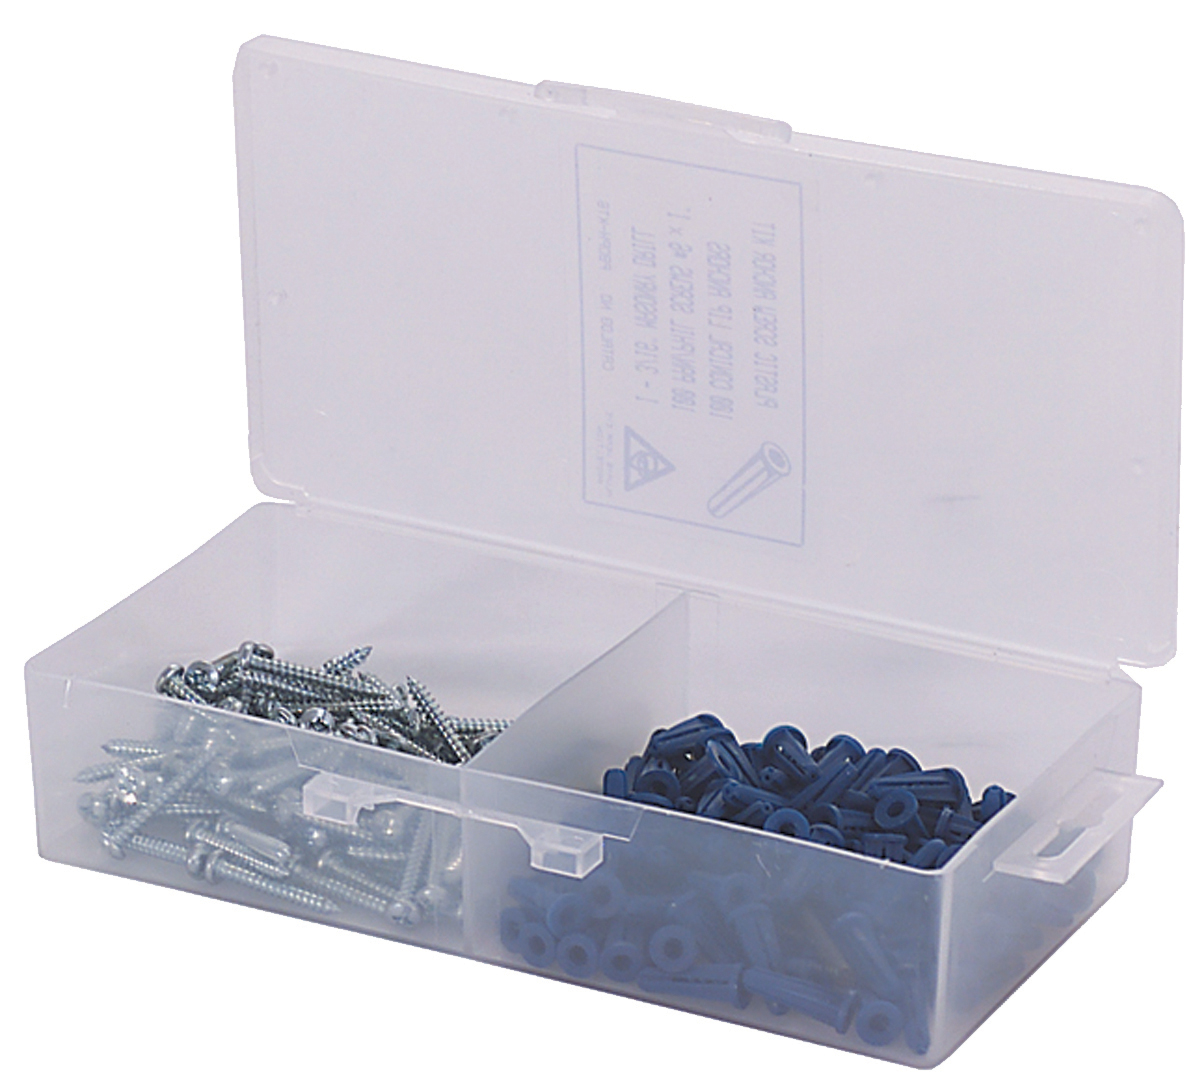 #10 x 1 Inch Bantam Plastic Conical Plug Anchor Kit Combo/Pan Head Screws Plastic Box